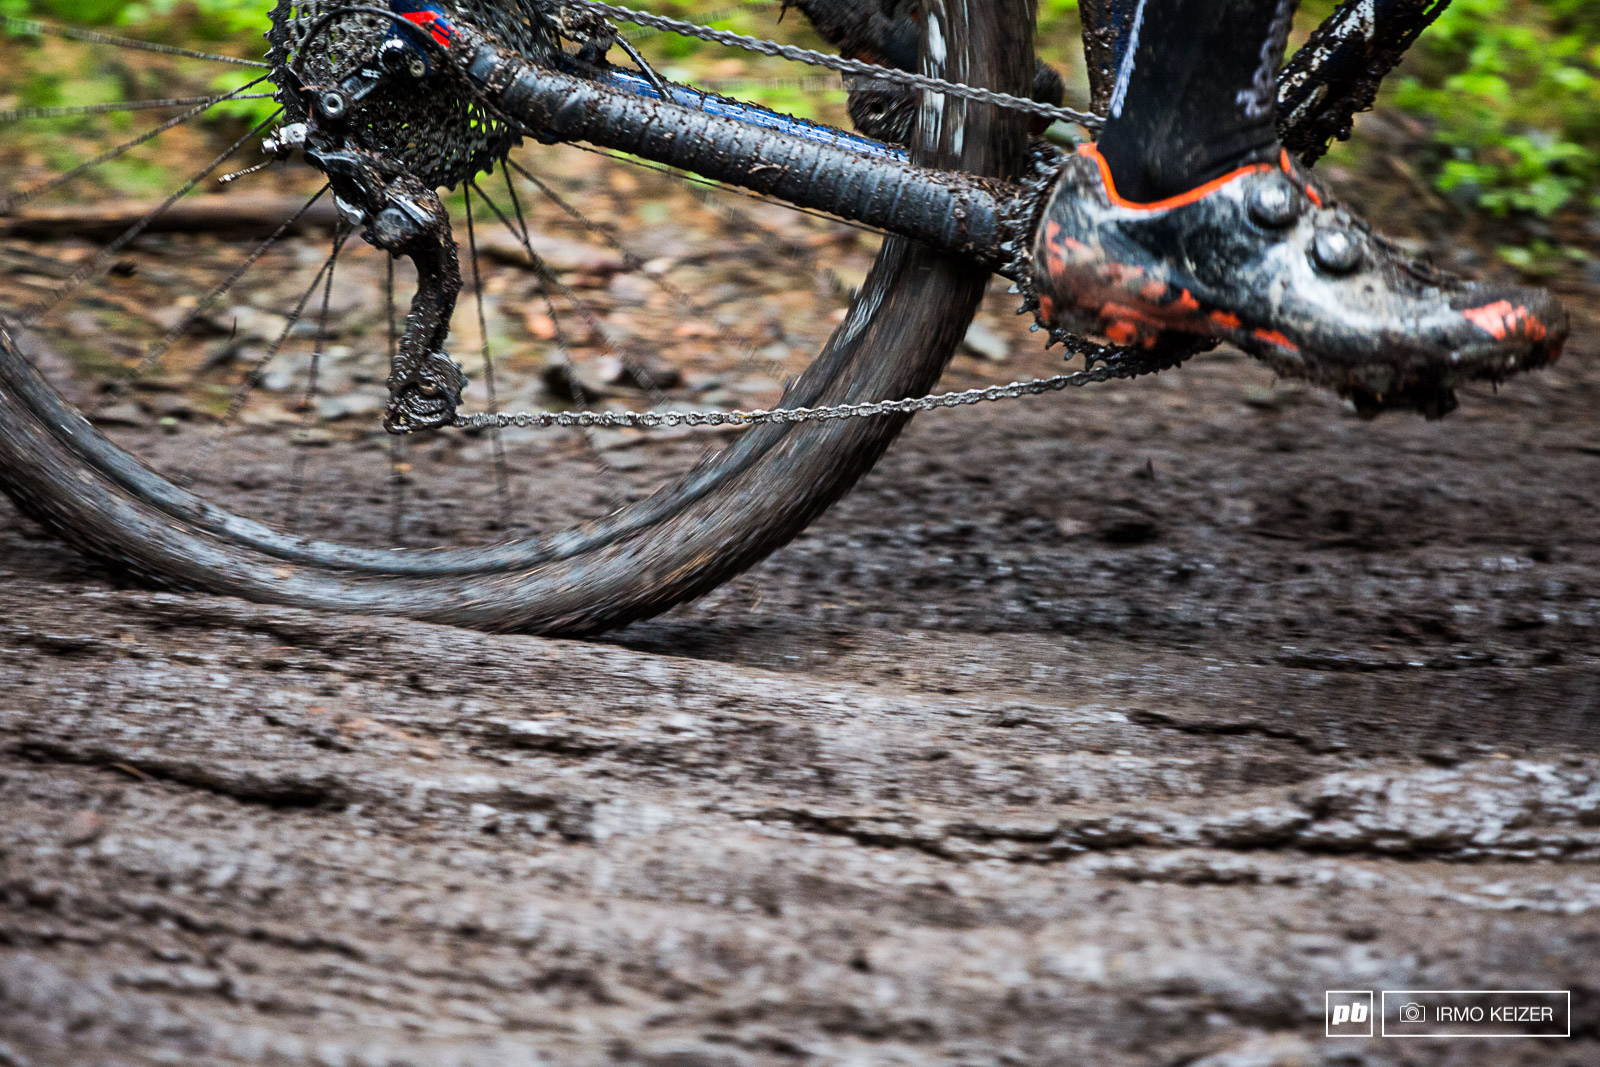 A fair share of riders had transmission issues both with SRAM and Shimano drivetrains. Broken chains dropped chains and...dropped batteries as some mechanics found it wise not to secure the Di2 battery inside the seatpost.